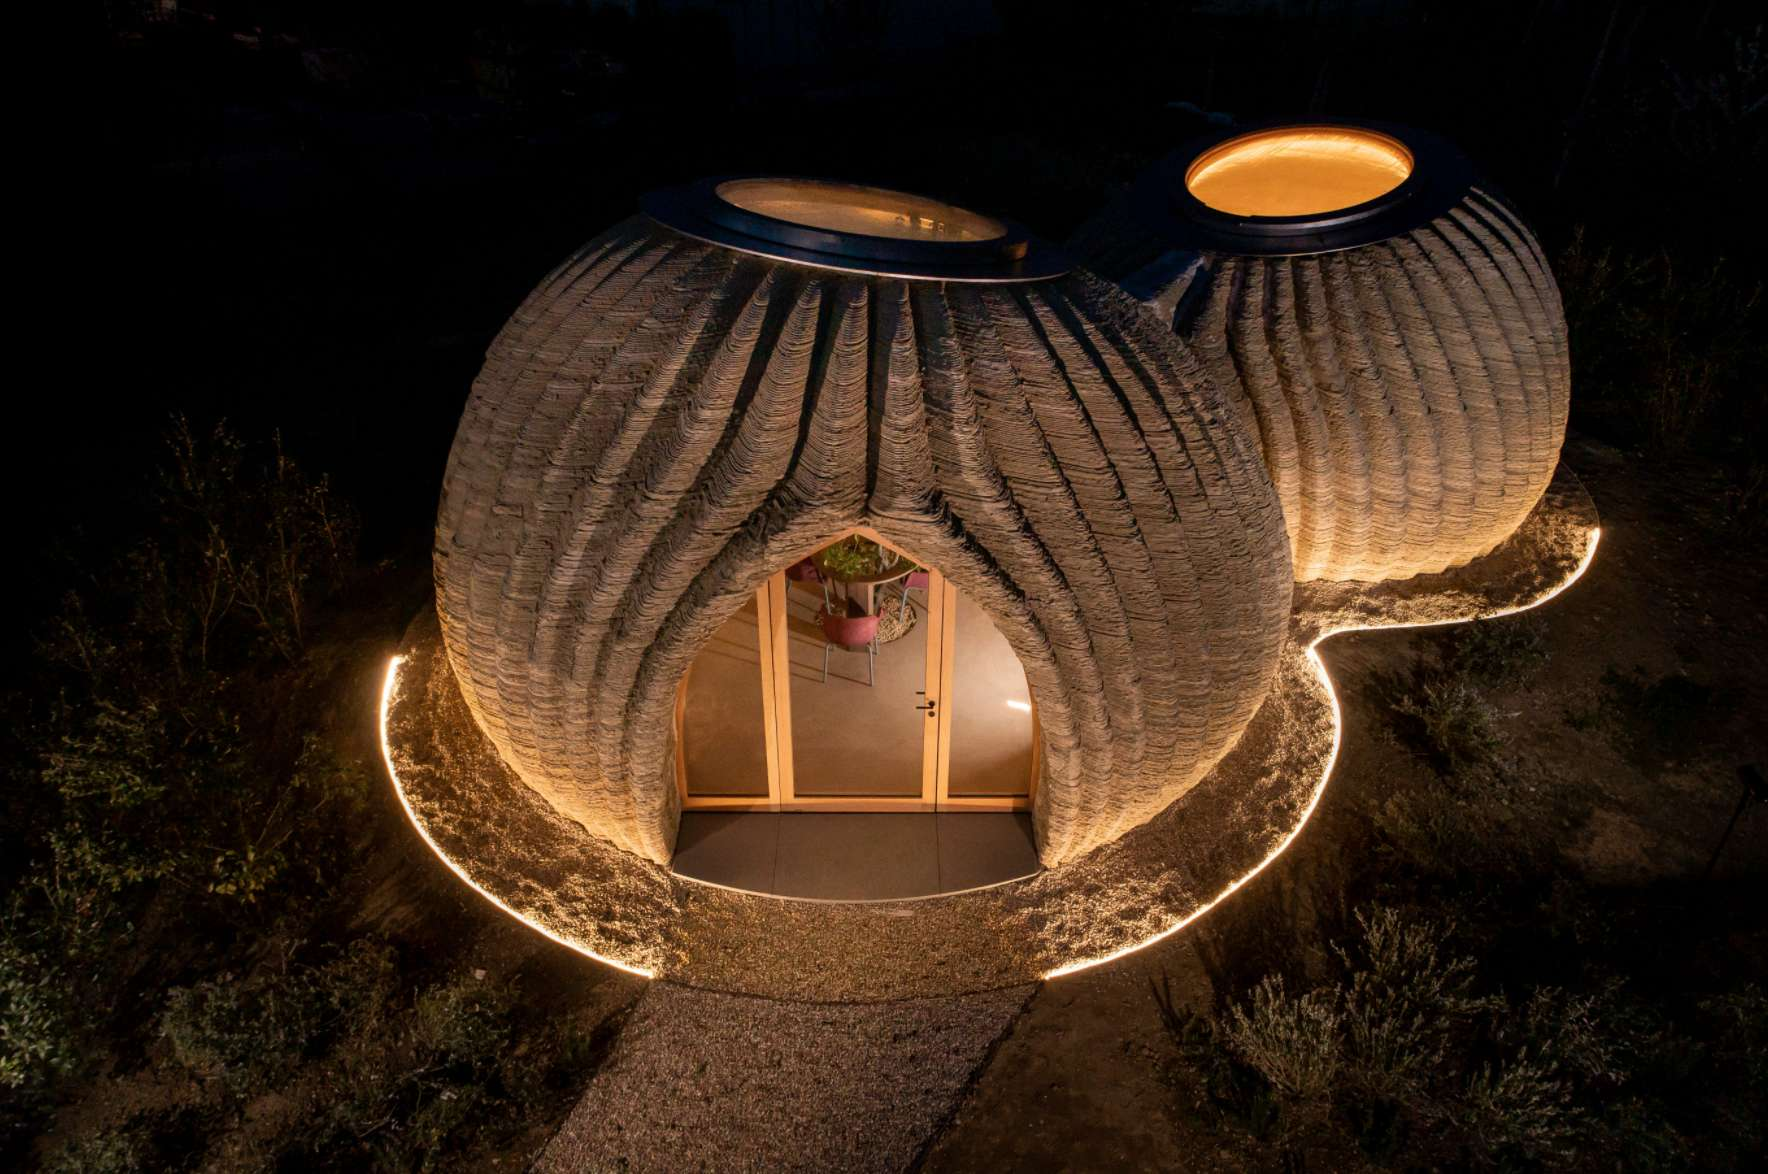 World's first raw earth material 3D-printed house is ready for residents